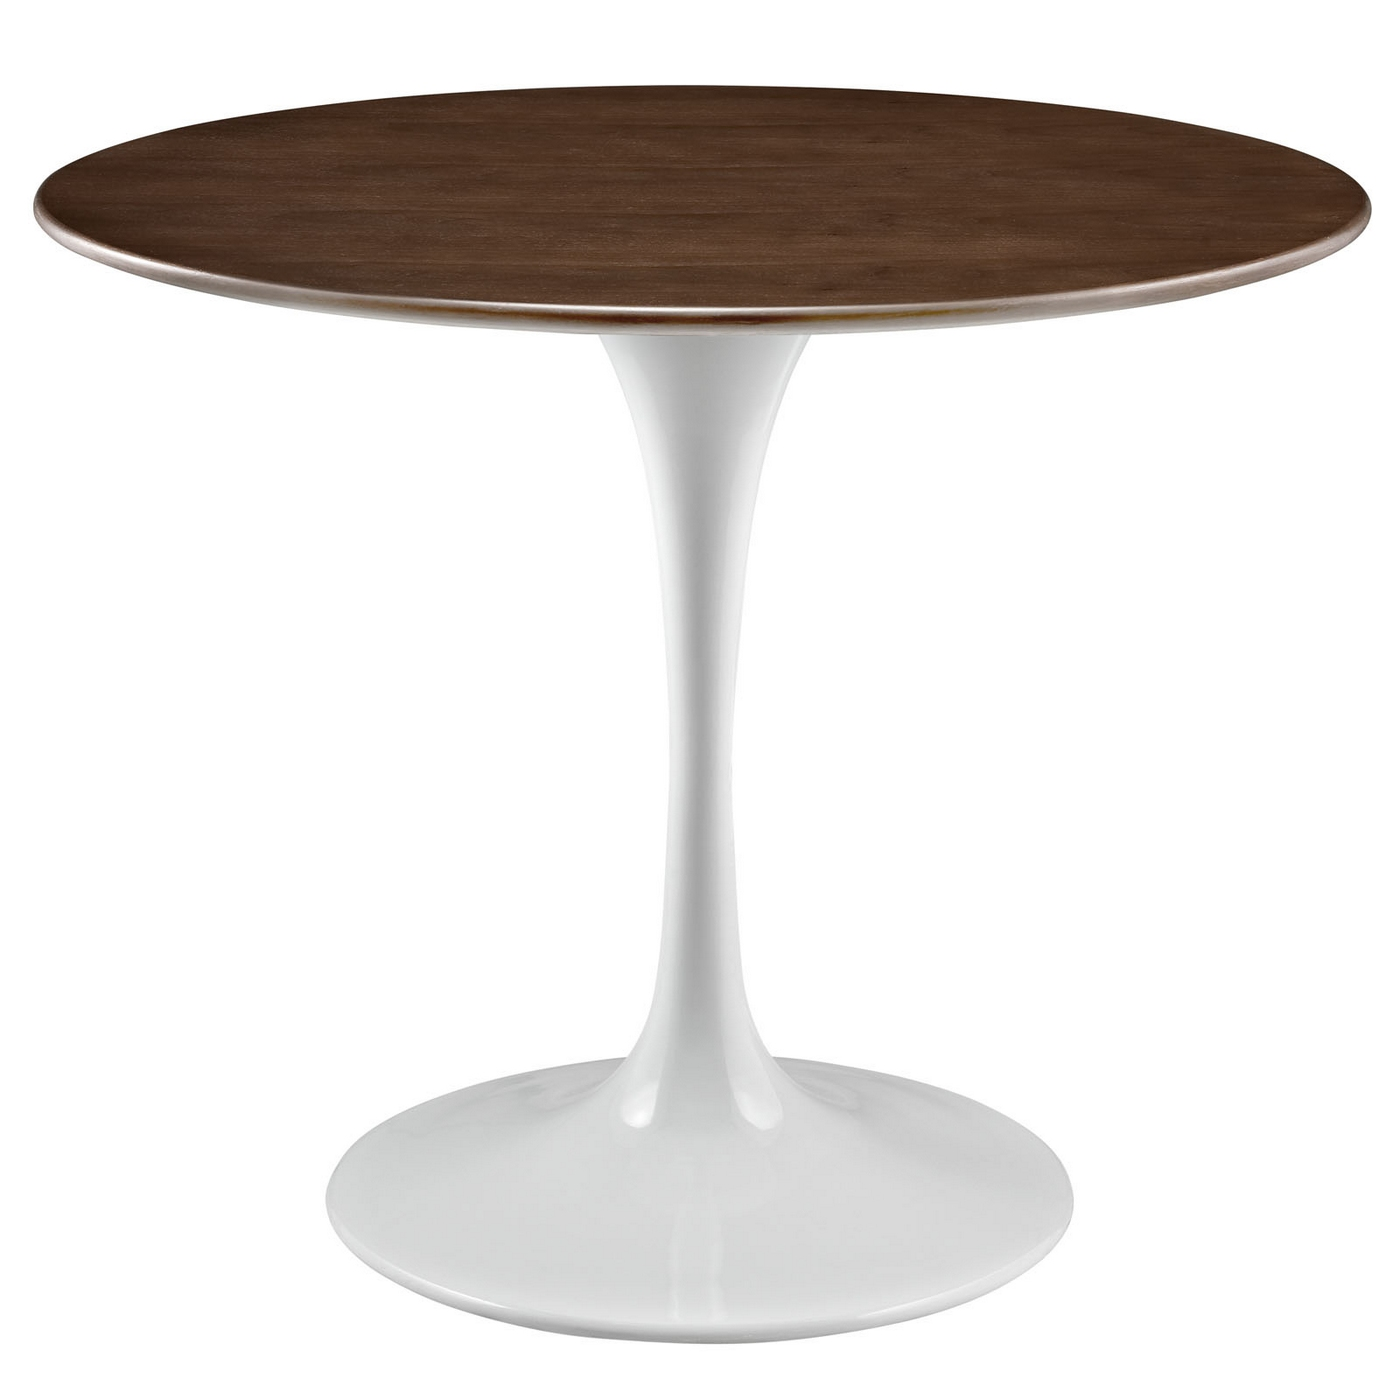 36 Tulip Table Lippa 36 Quot Round Walnut Top Dining Table With Lacquered